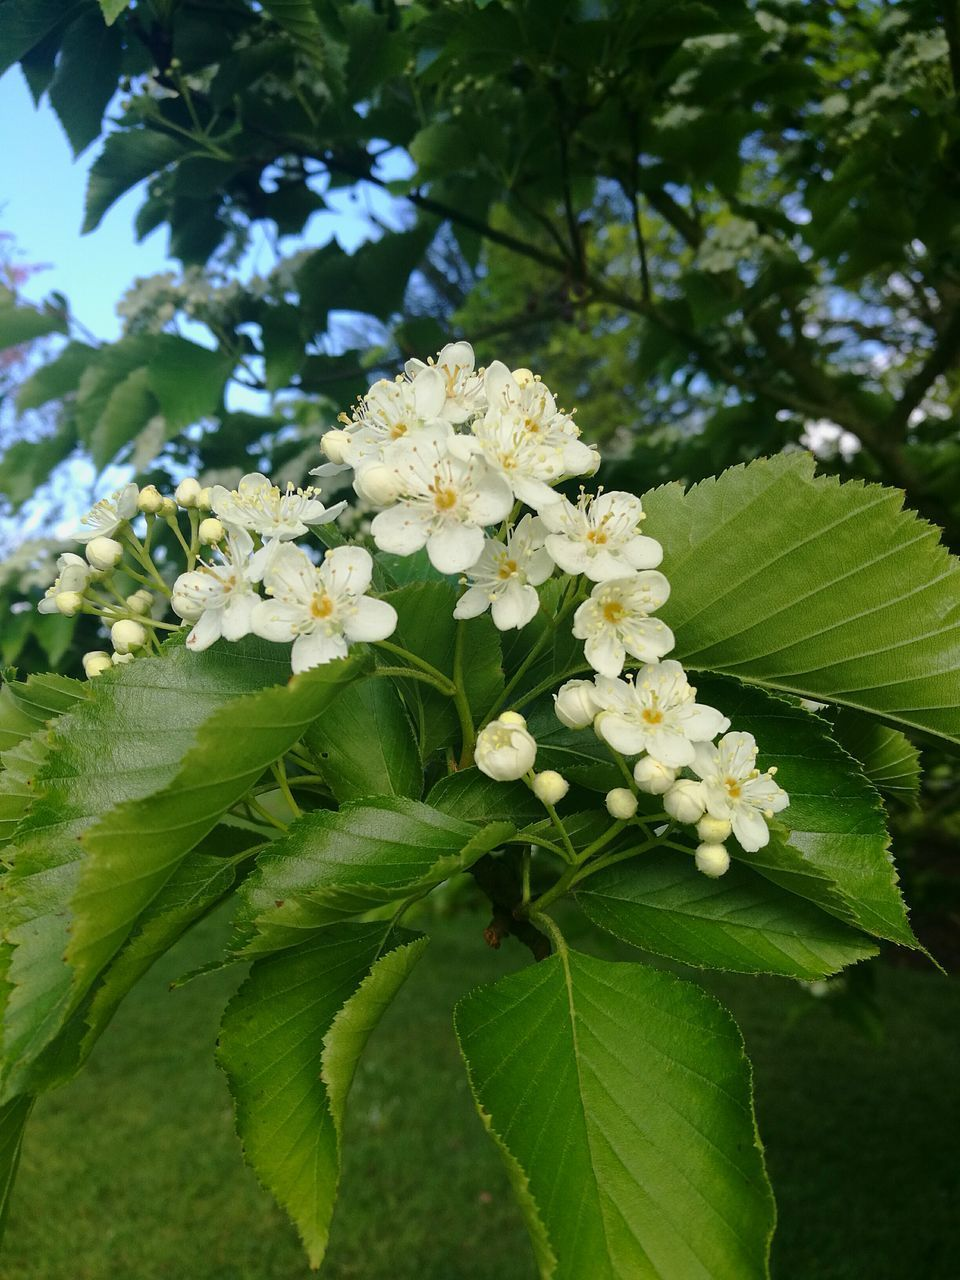 flower, growth, leaf, fragility, freshness, beauty in nature, nature, green color, tree, petal, white color, blossom, branch, day, no people, outdoors, springtime, park - man made space, plant, flower head, blooming, close-up